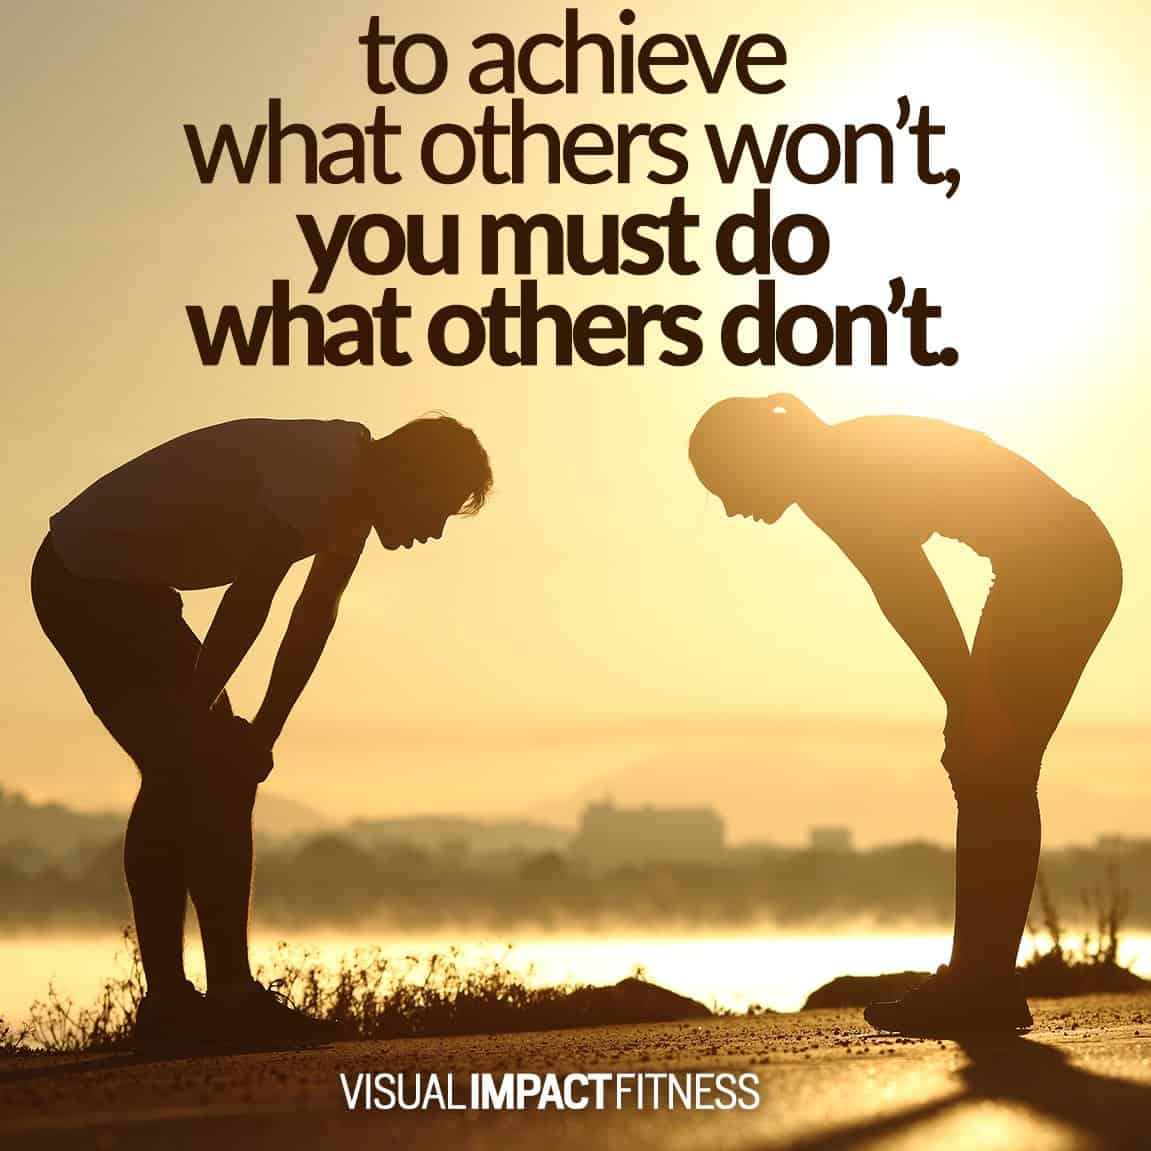 To achieve what others won't, you must do what others don't